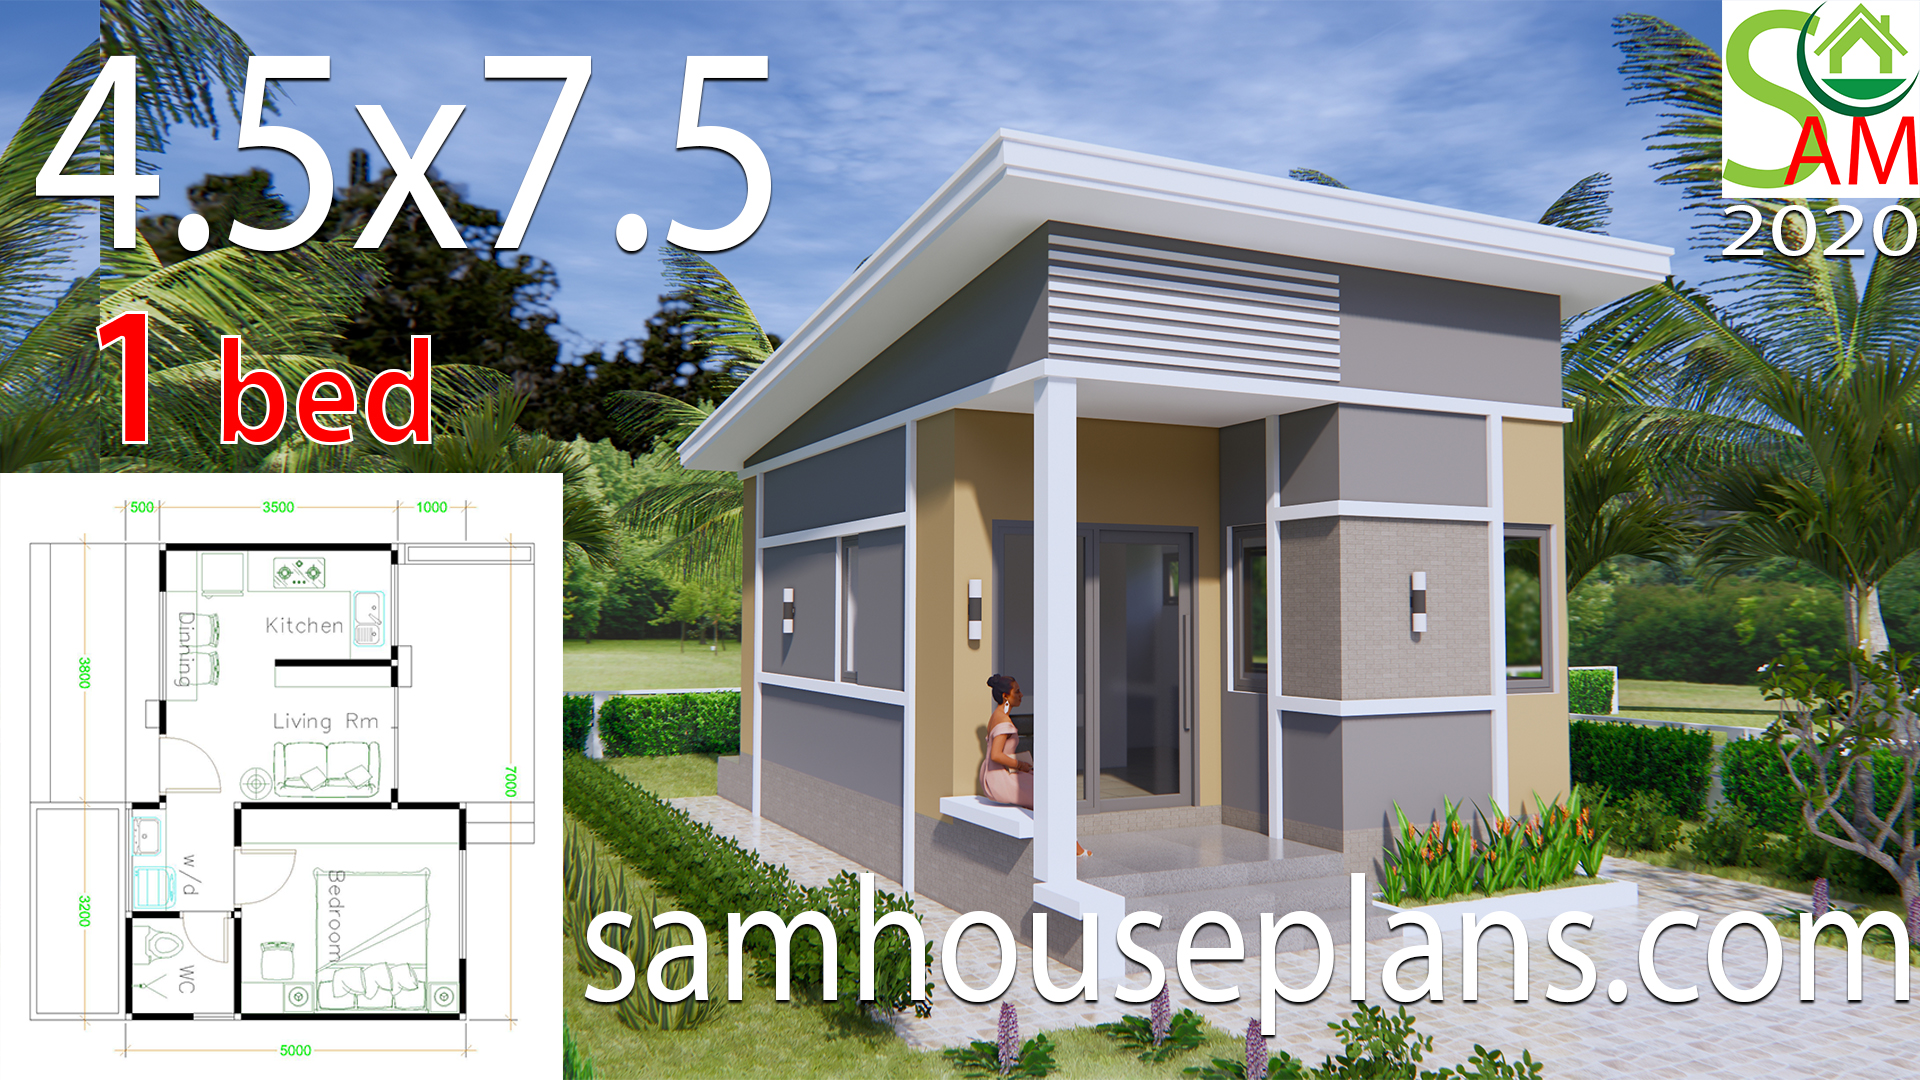 Small House Plans 4.5x7.5 with One Bedroom Shed roof - Sam House Plans